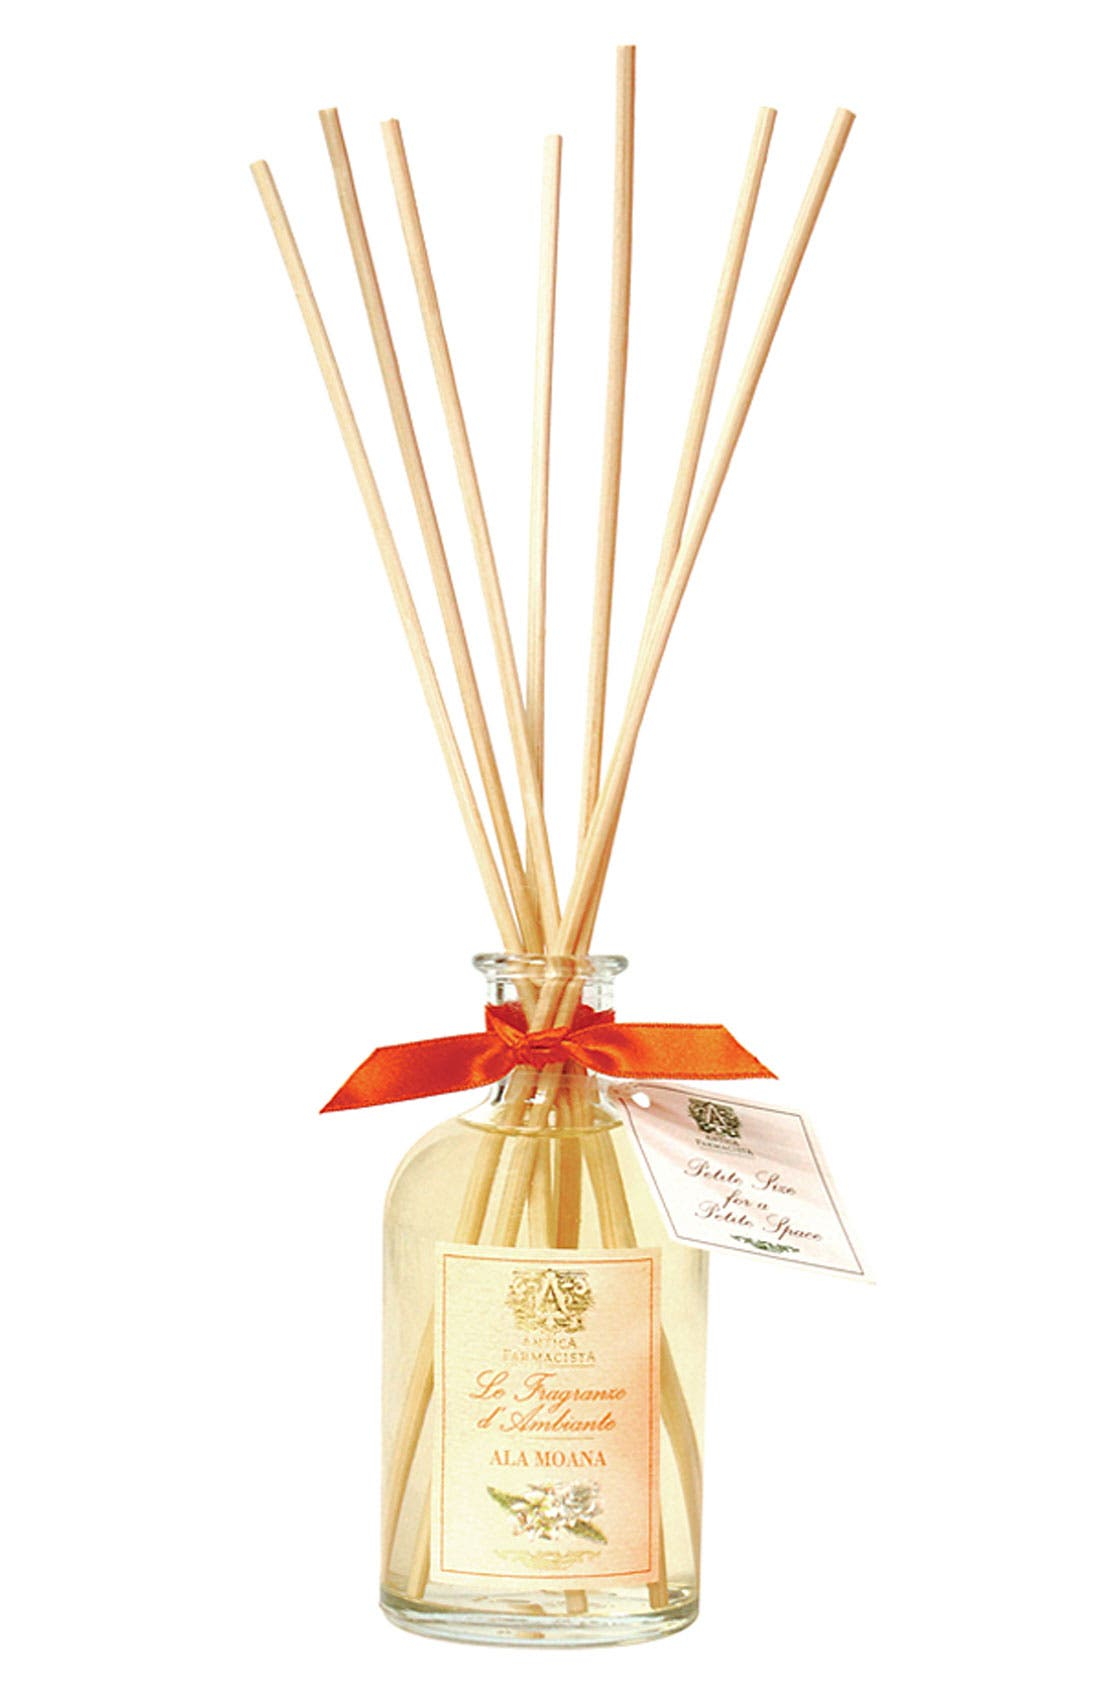 Alternate Image 1 Selected - Antica Farmacista 'Ala Moana' Home Ambiance Perfume (3.3 oz.)